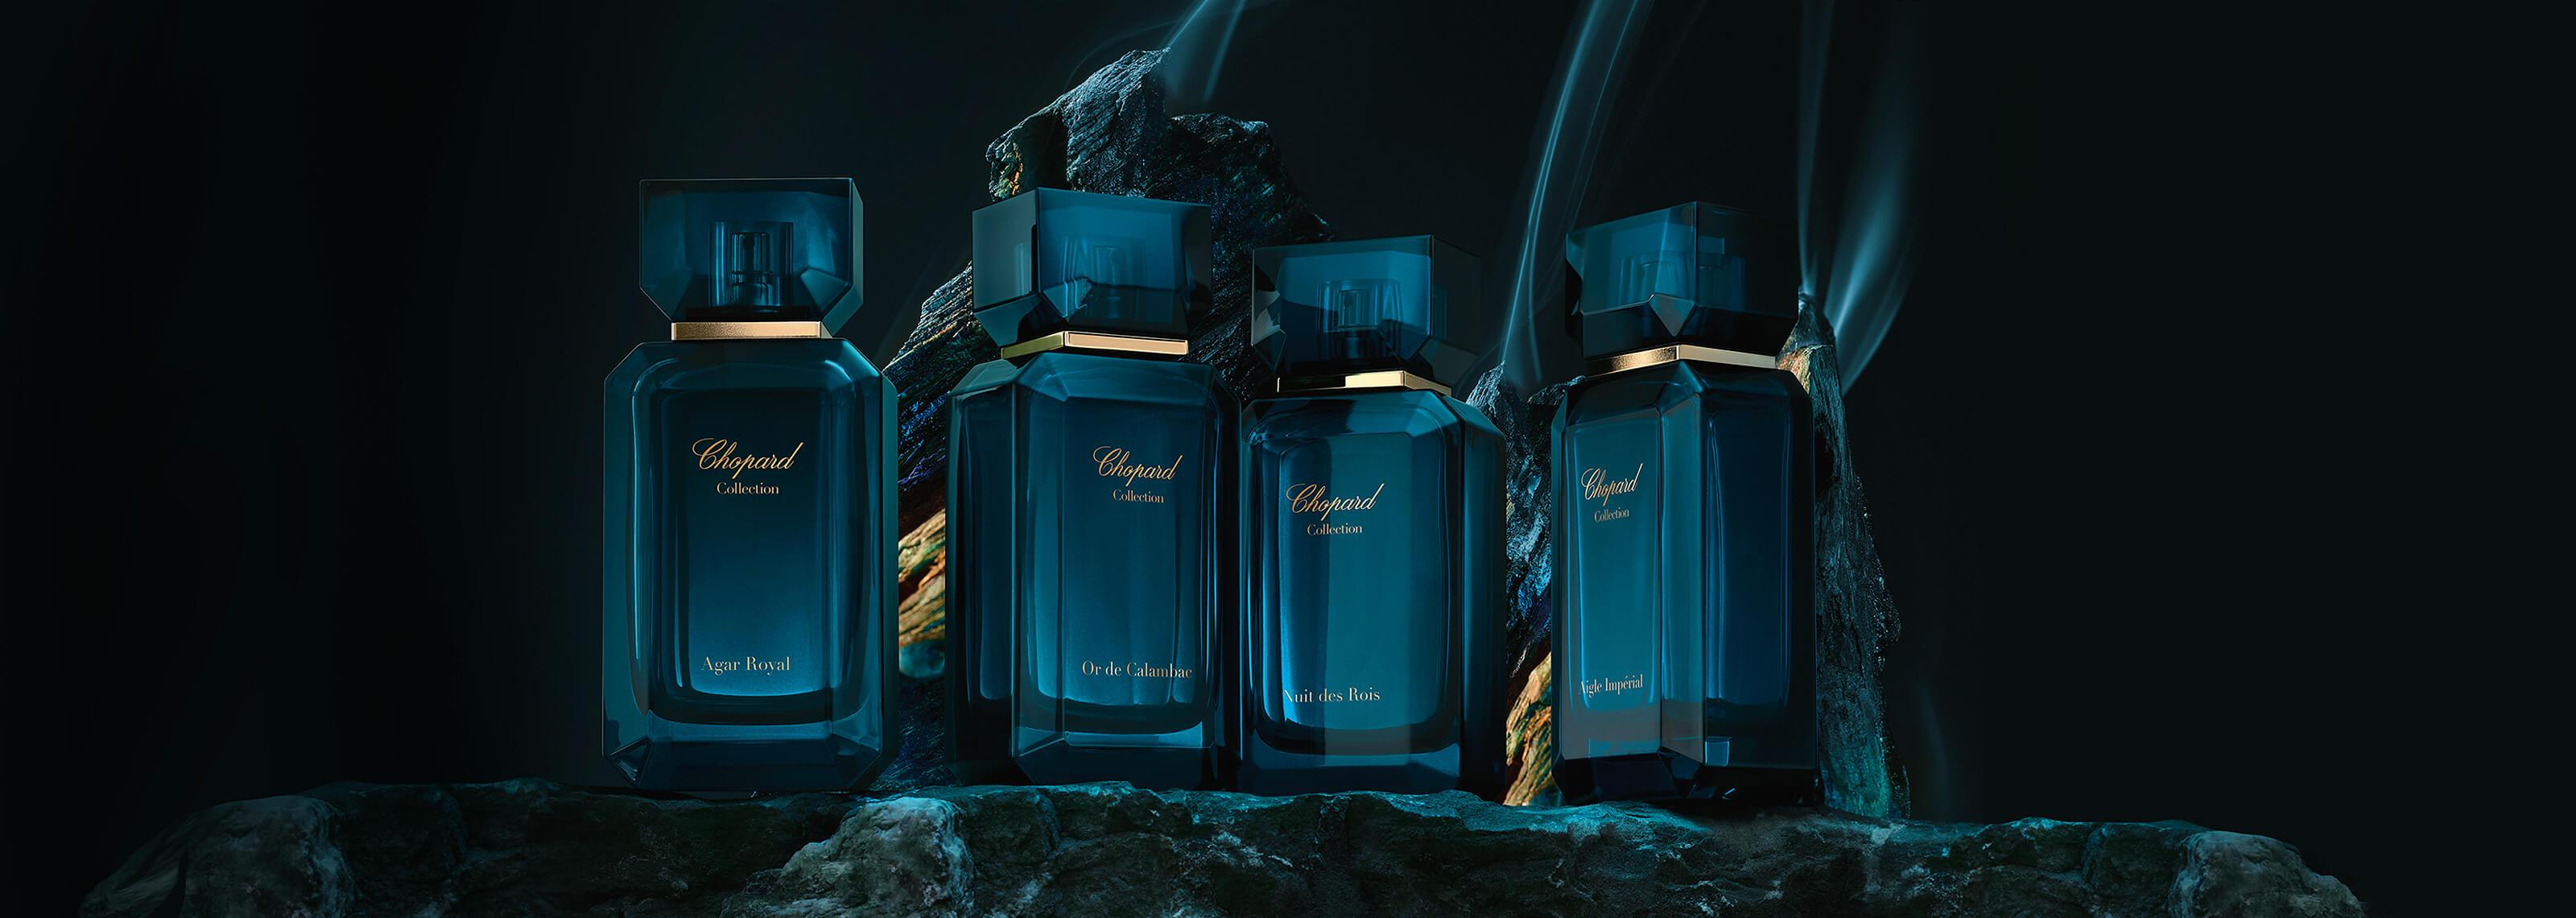 New Haute Parfurmerie collection</br>Gardens of the Kings